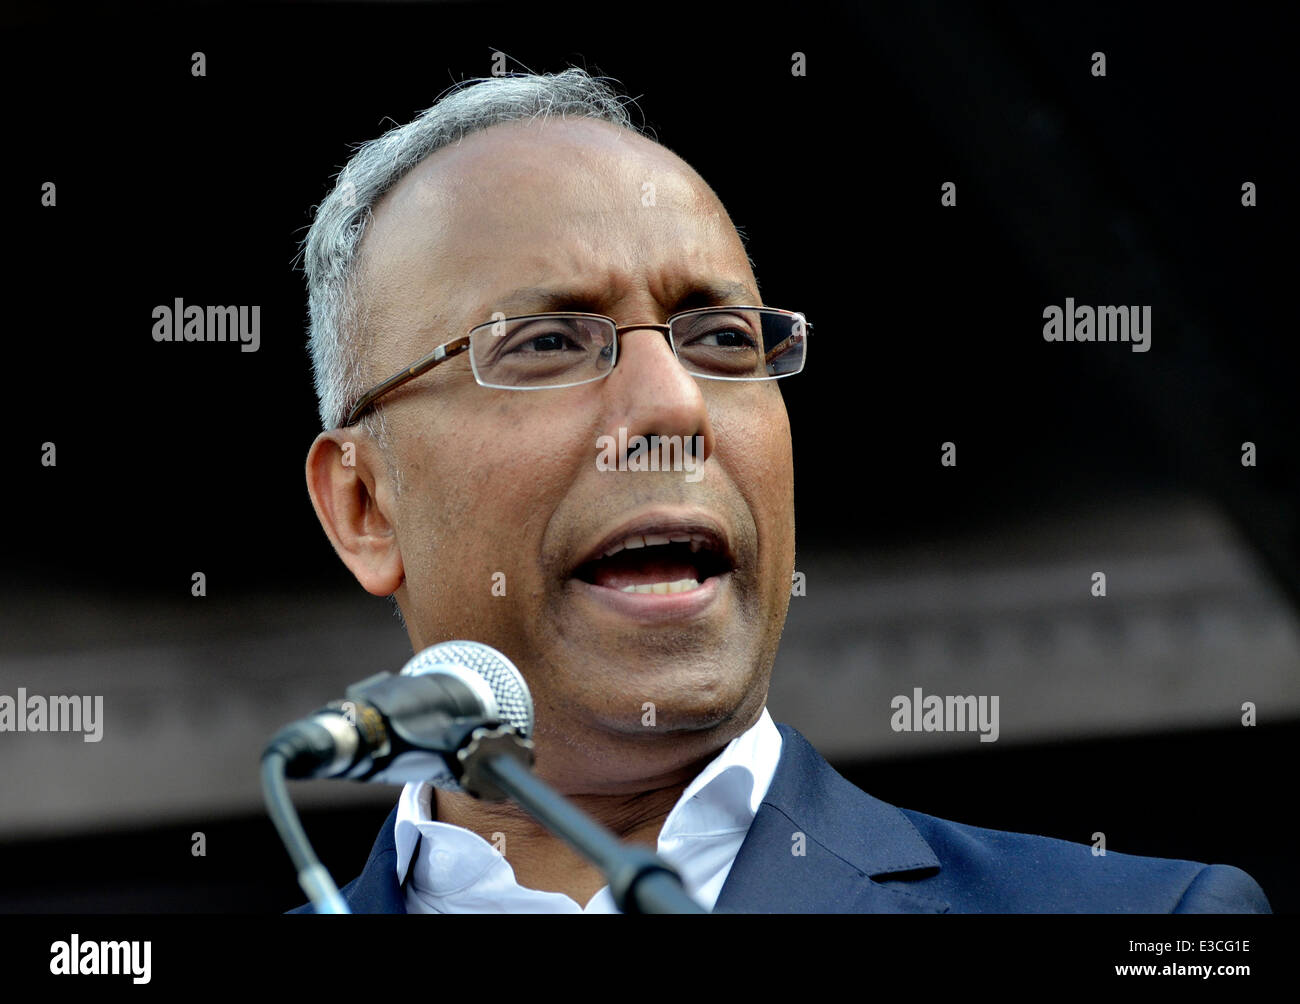 Lutfur Rahman - mayor of Tower Hamlets - speaking at a rally in Parliament Square, London, 21st June 2014 - Stock Image